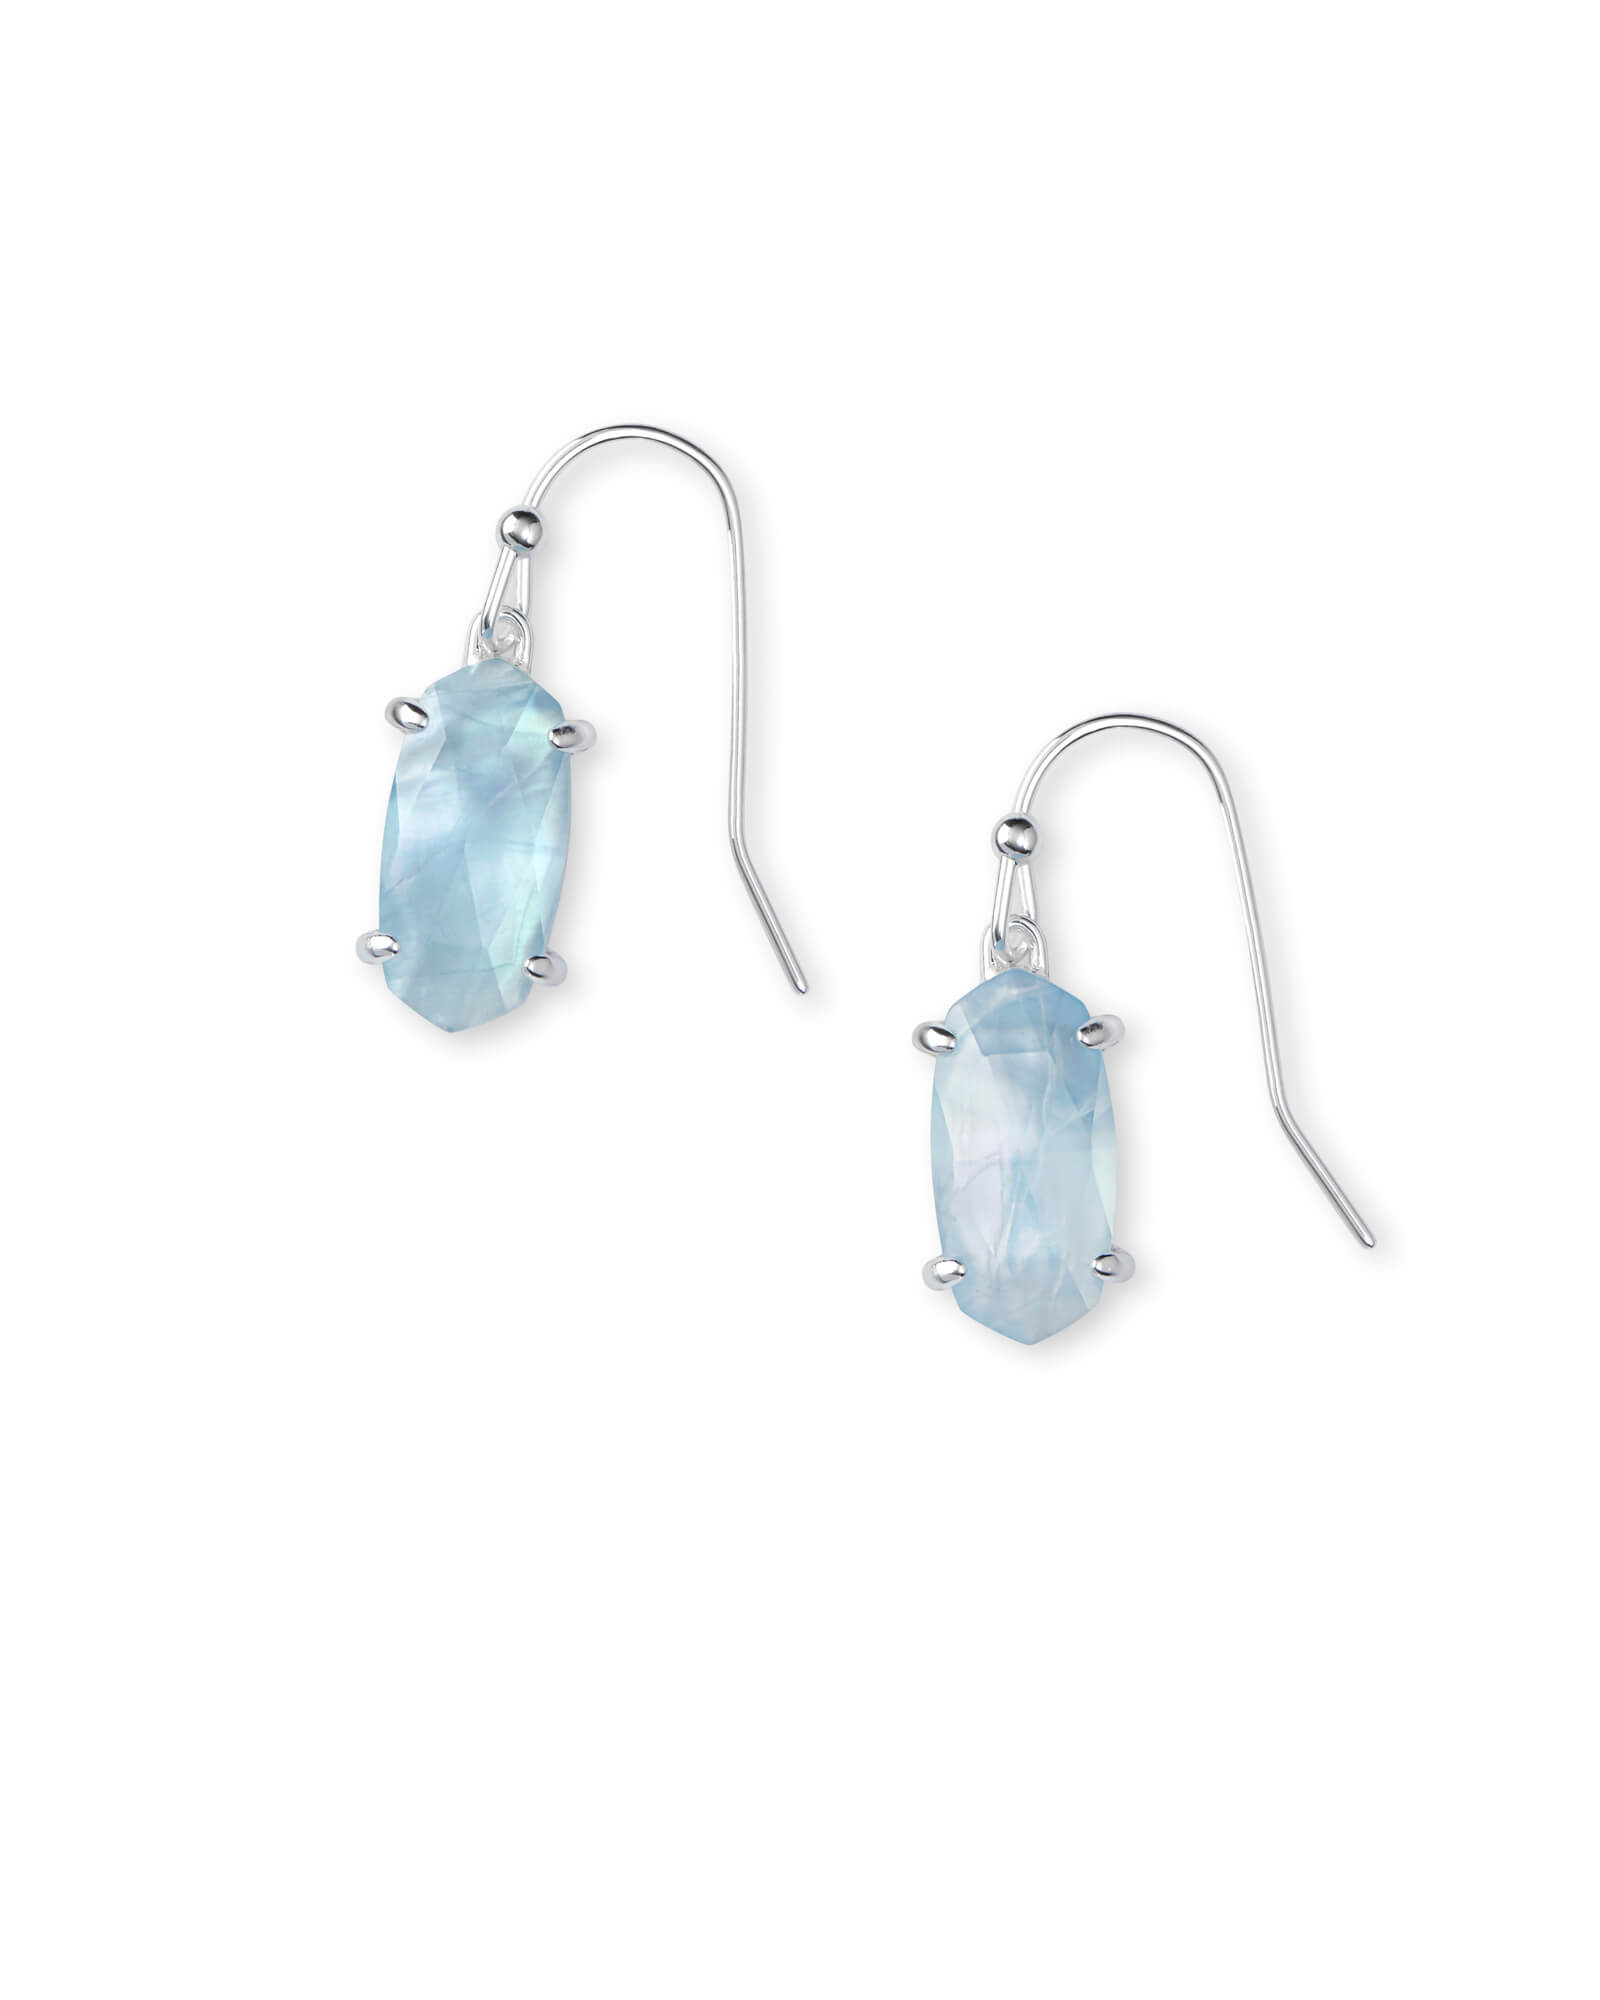 Lemmi Bright Silver Drop Earrings in Sky Blue Illusion